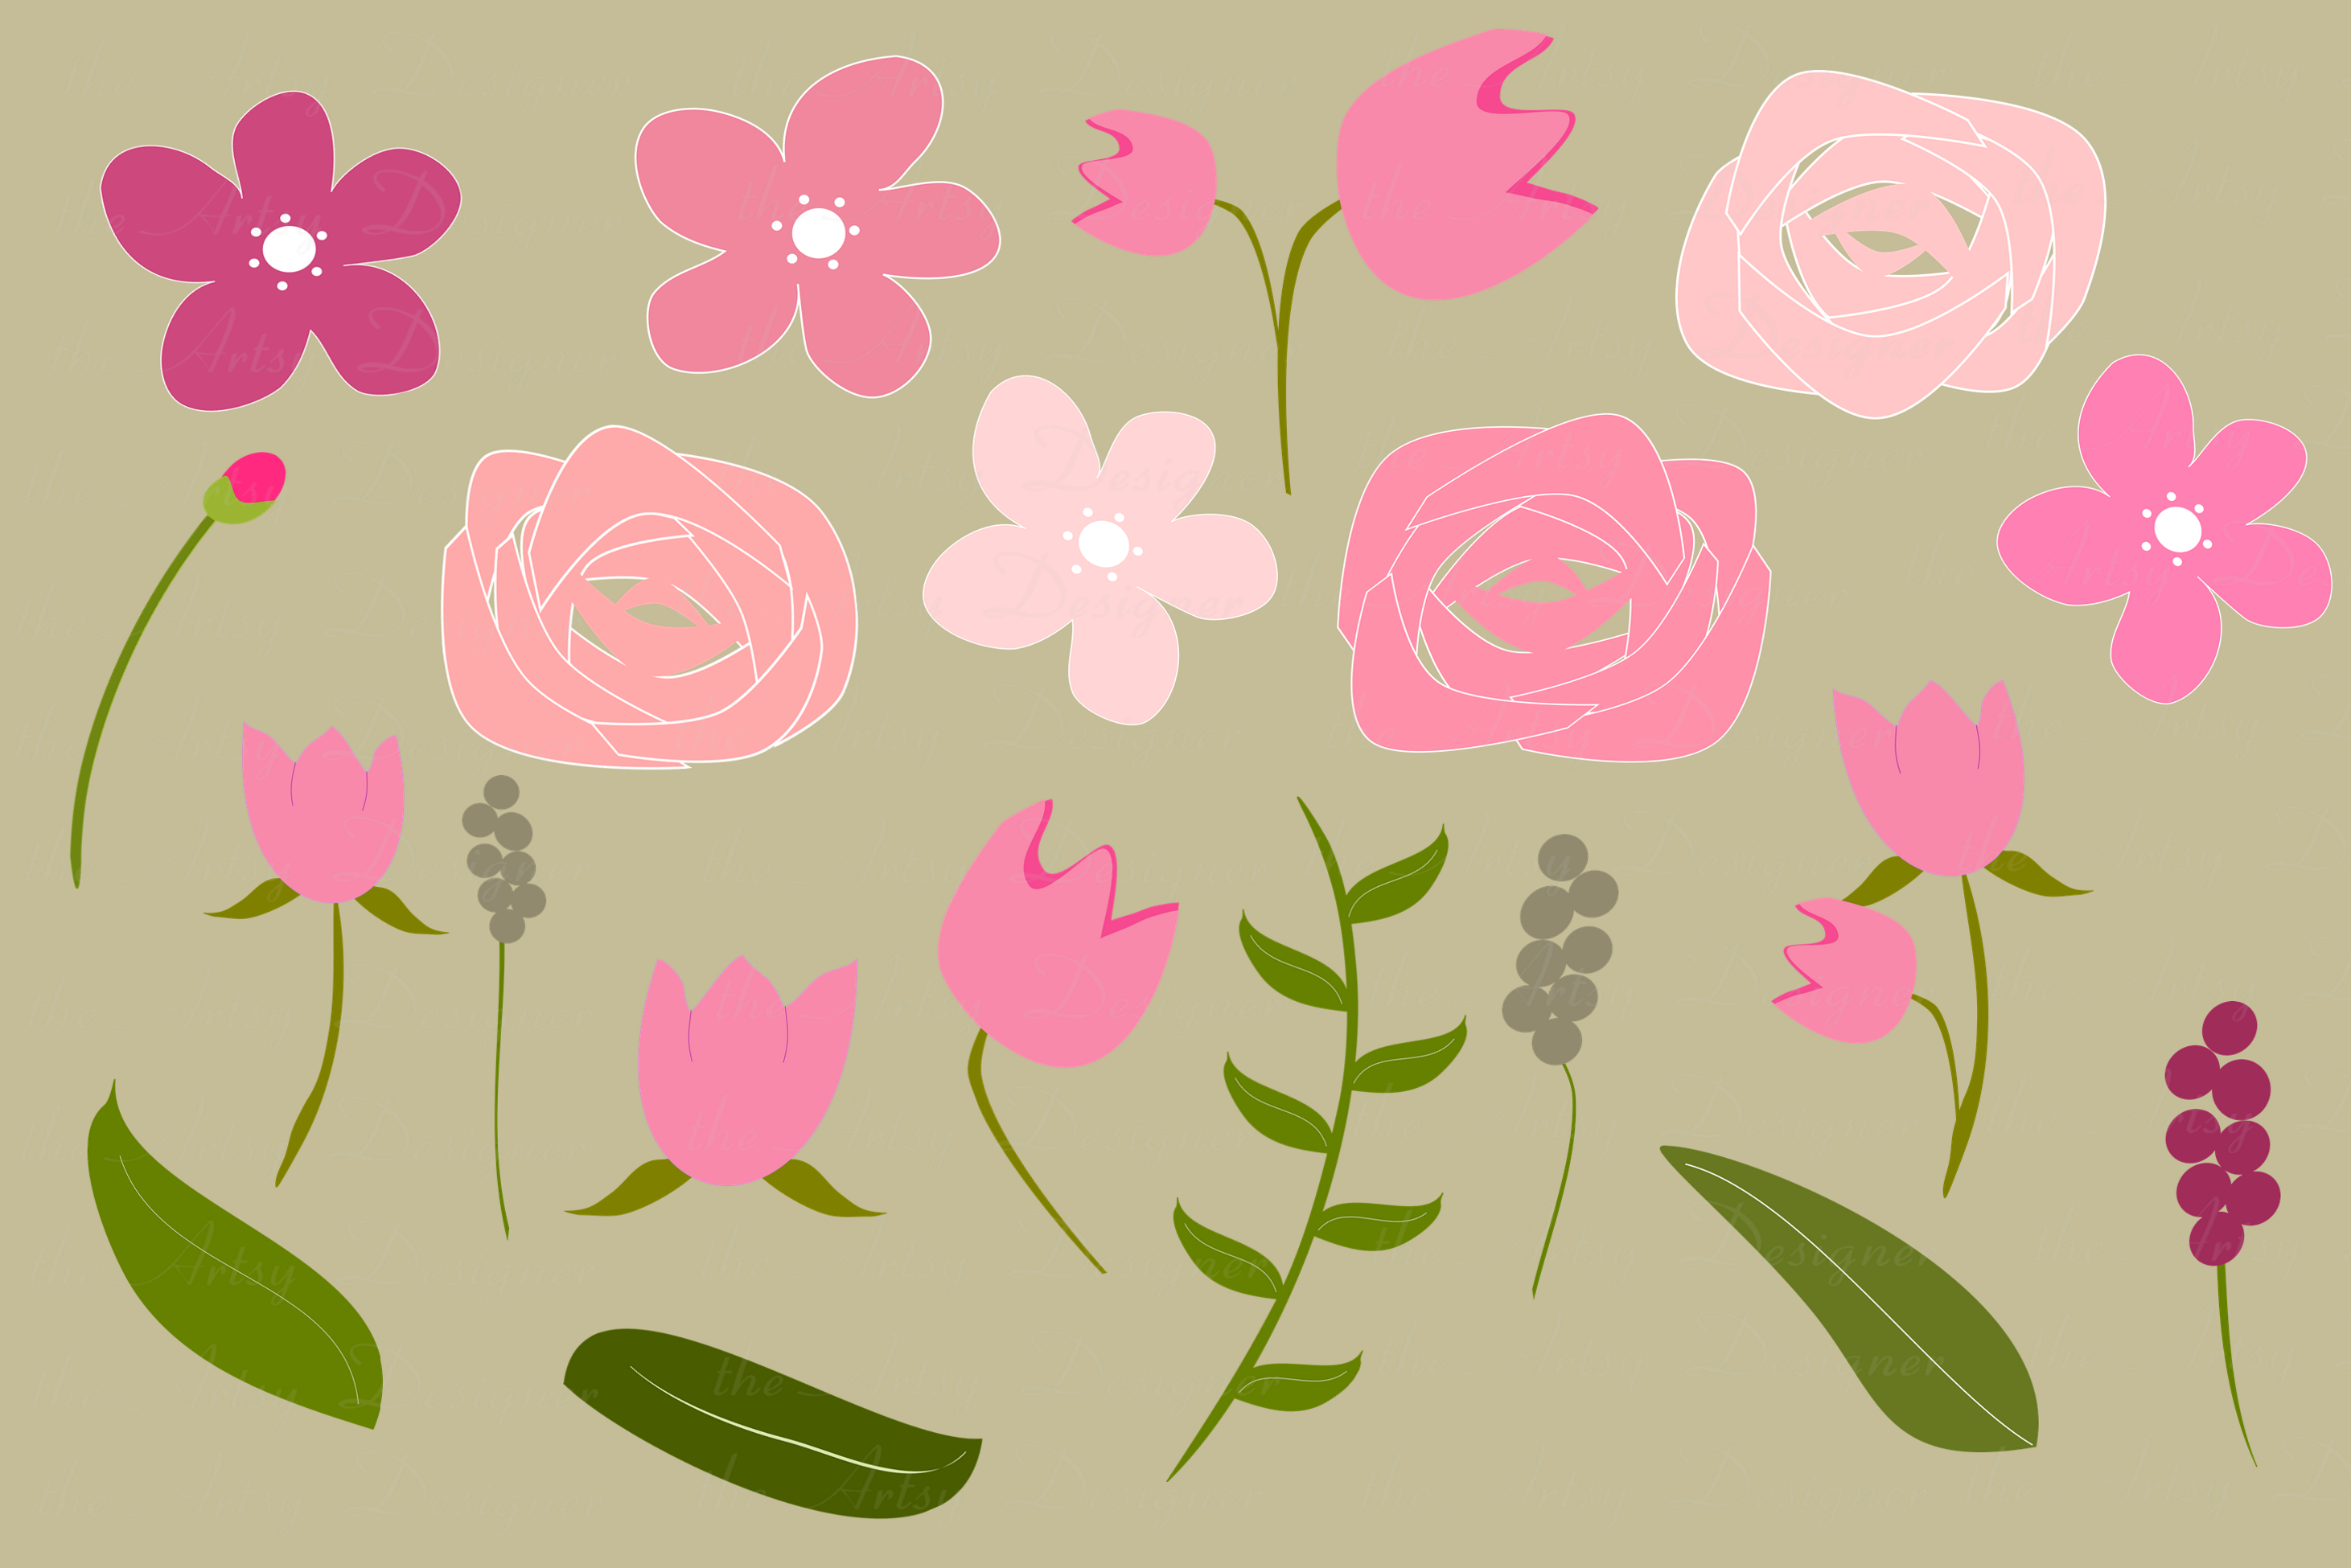 Pink Roses Tulips Flowers Sublimation Clipart Swags Bundle example image 4